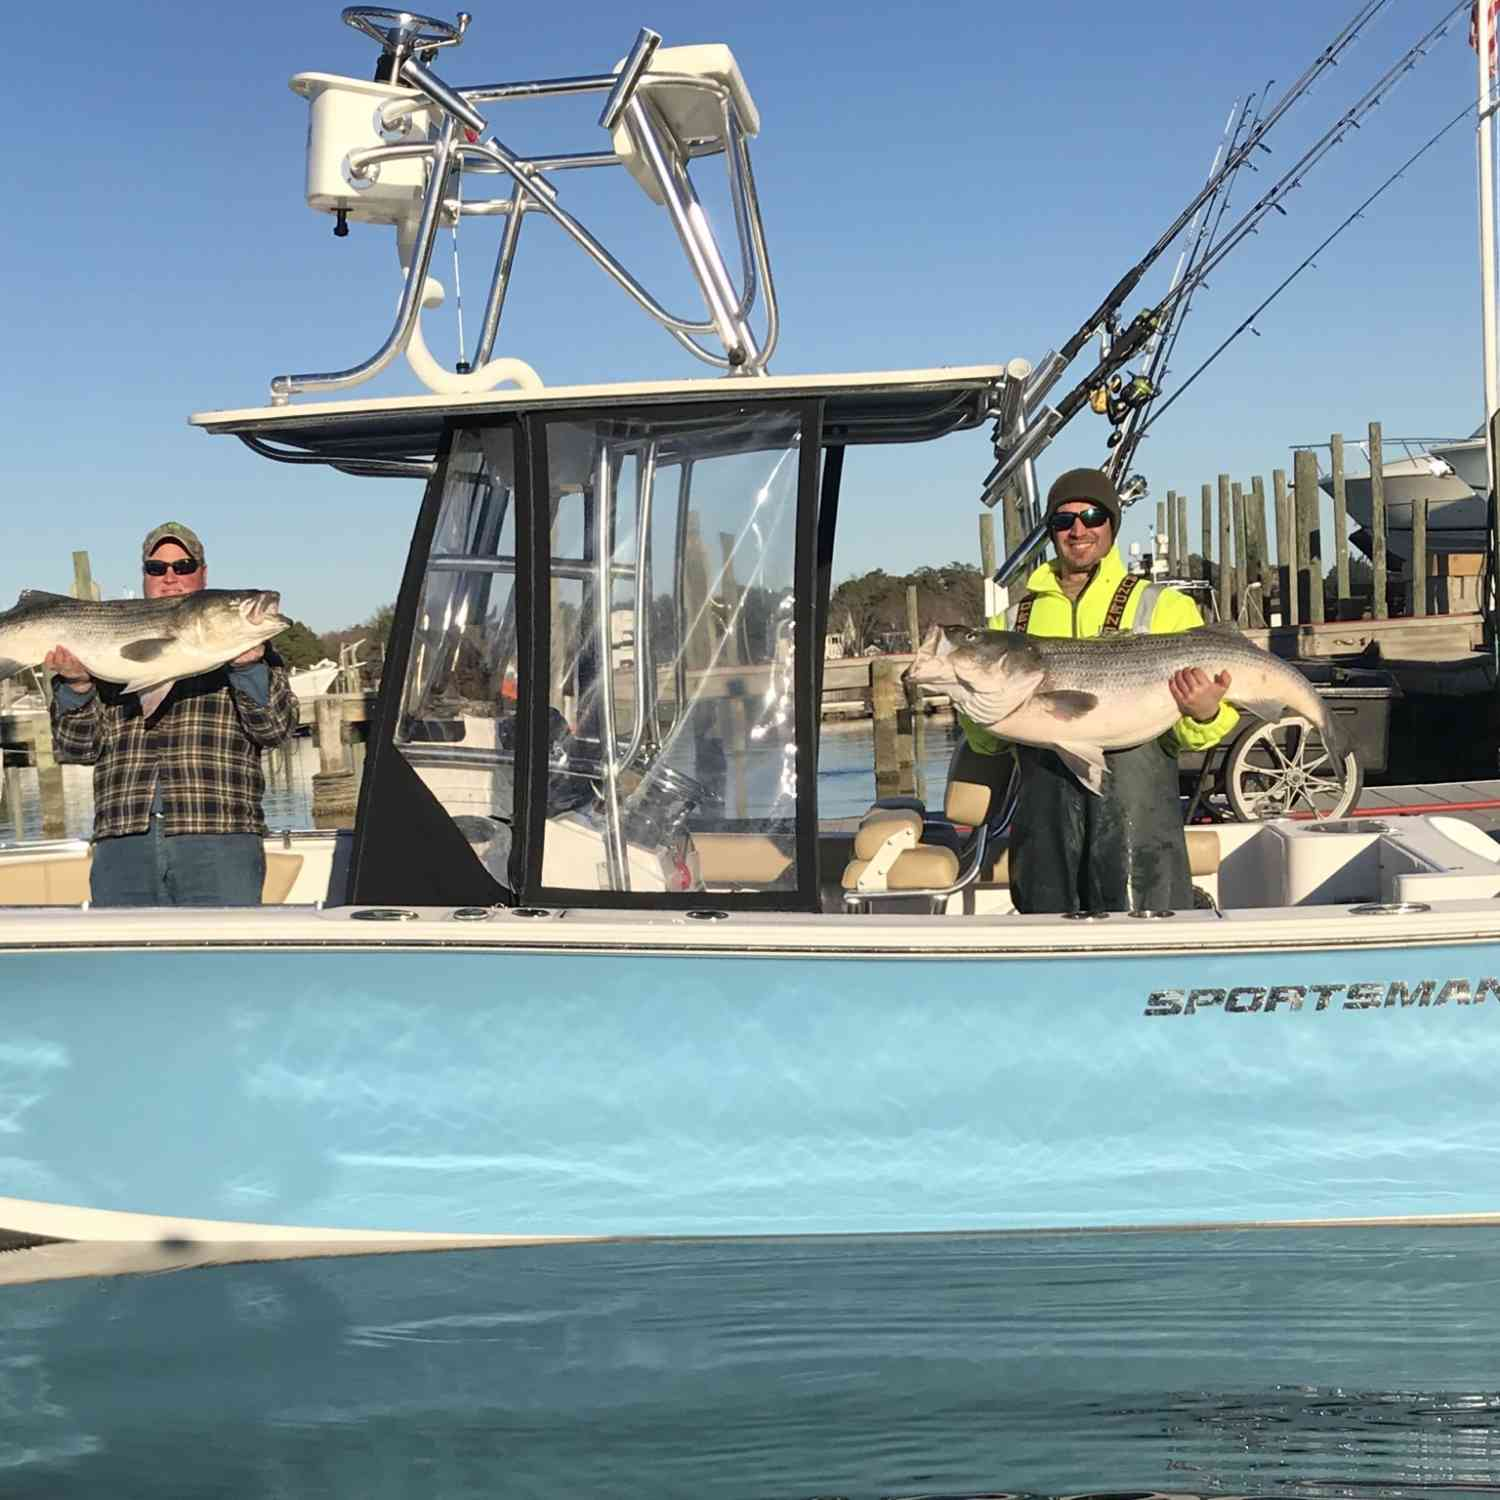 Title: Citation Rockfish BABY!! - On board their Sportsman Open 232 Center Console - Location: Yorktown, Va. Participating in the Photo Contest #SportsmanJune2018